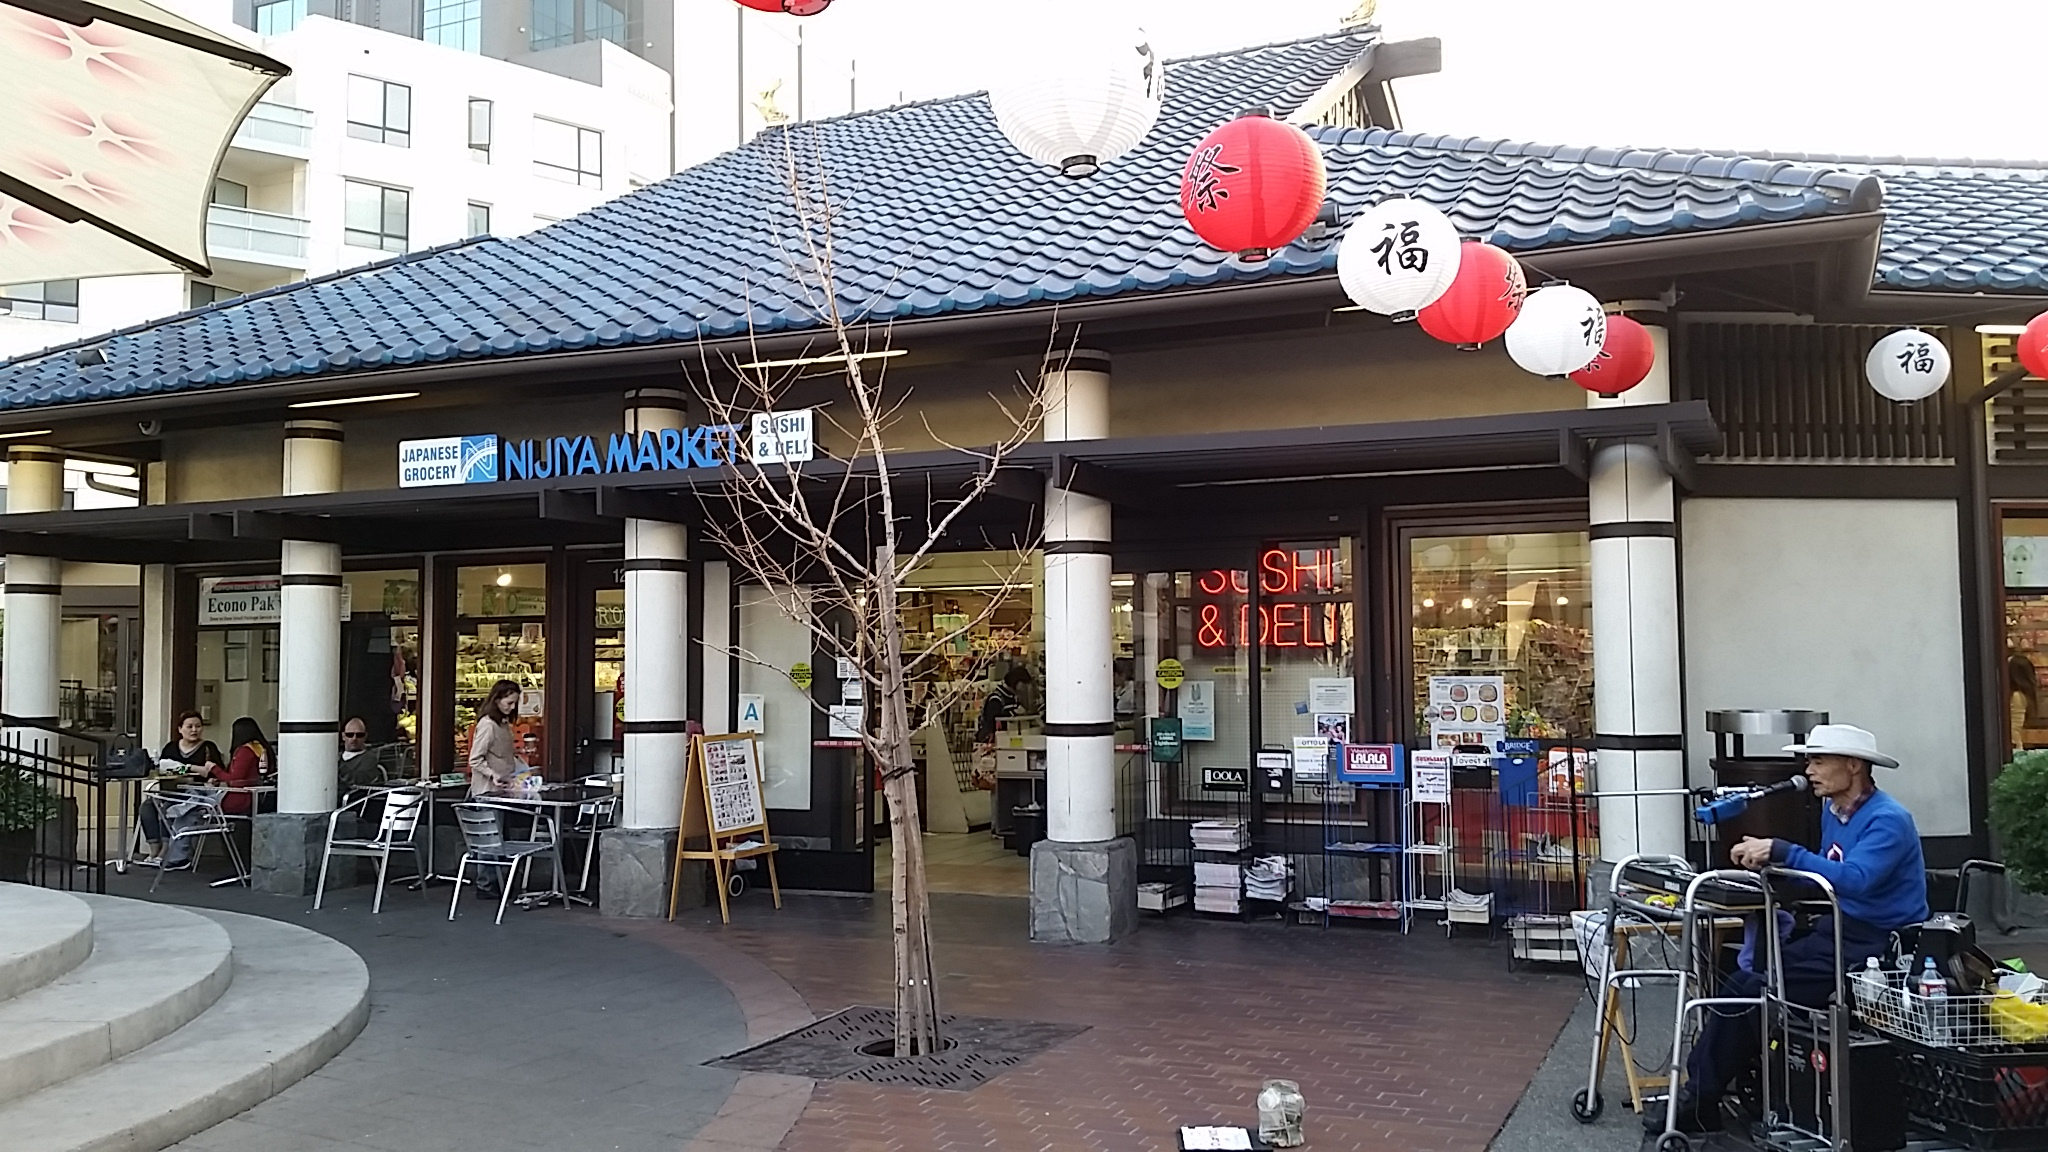 Little Tokyo Markets Explored in Edible Adventures Tour This Saturday